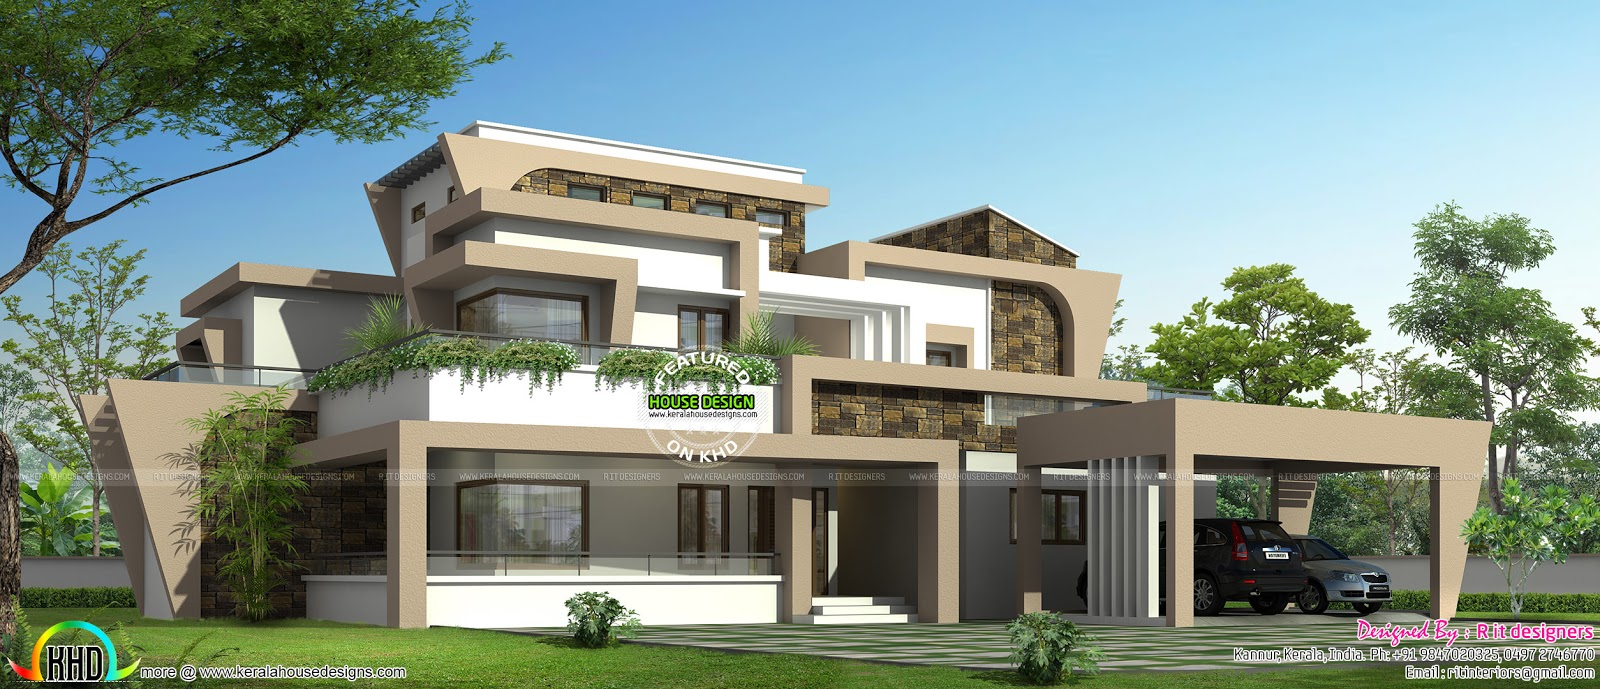 Unique modern home design in kerala kerala home design for Modern home layout plans